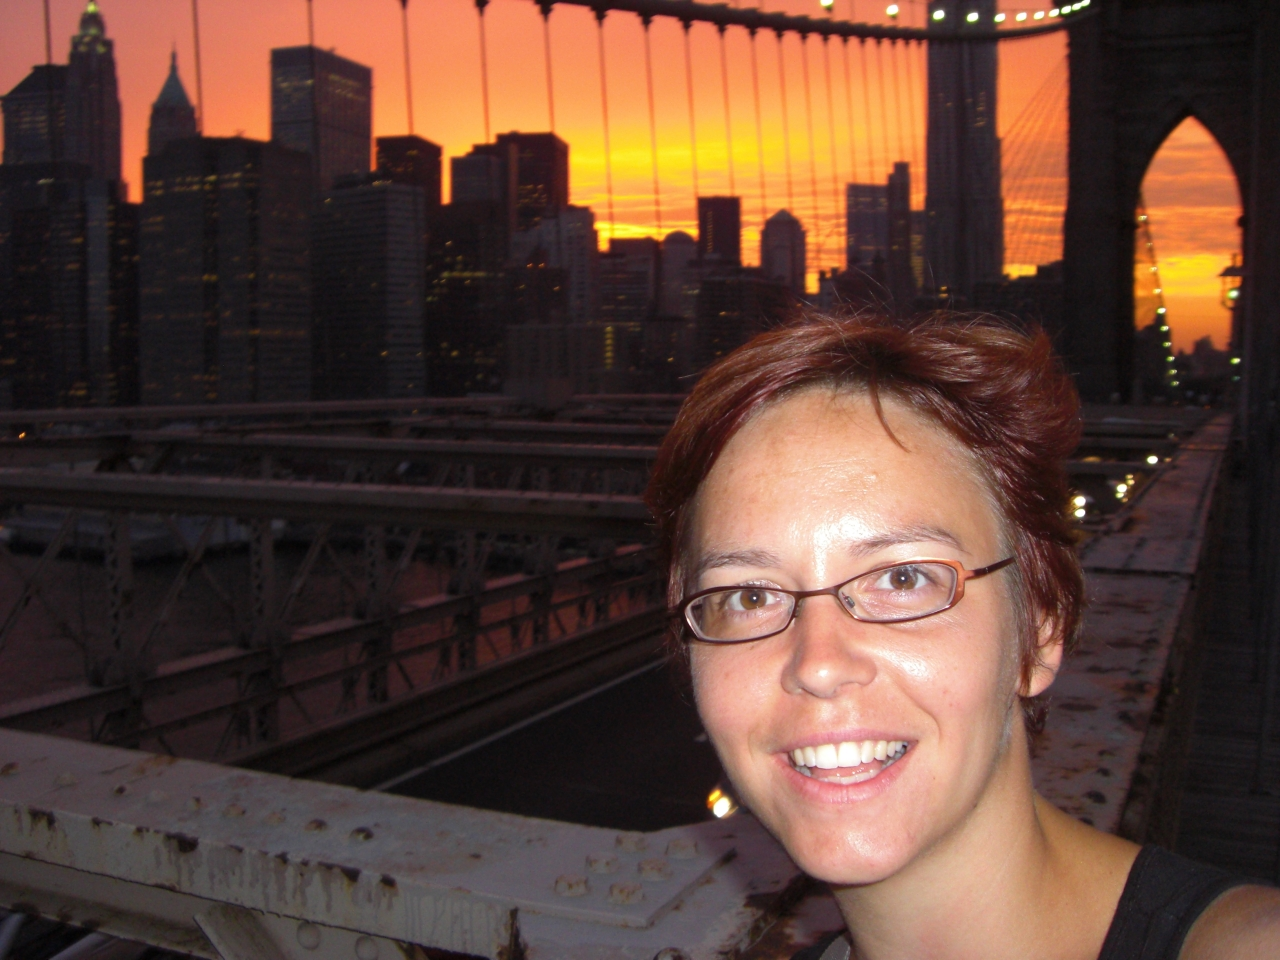 Brooklyn Bridge Selbstportrait